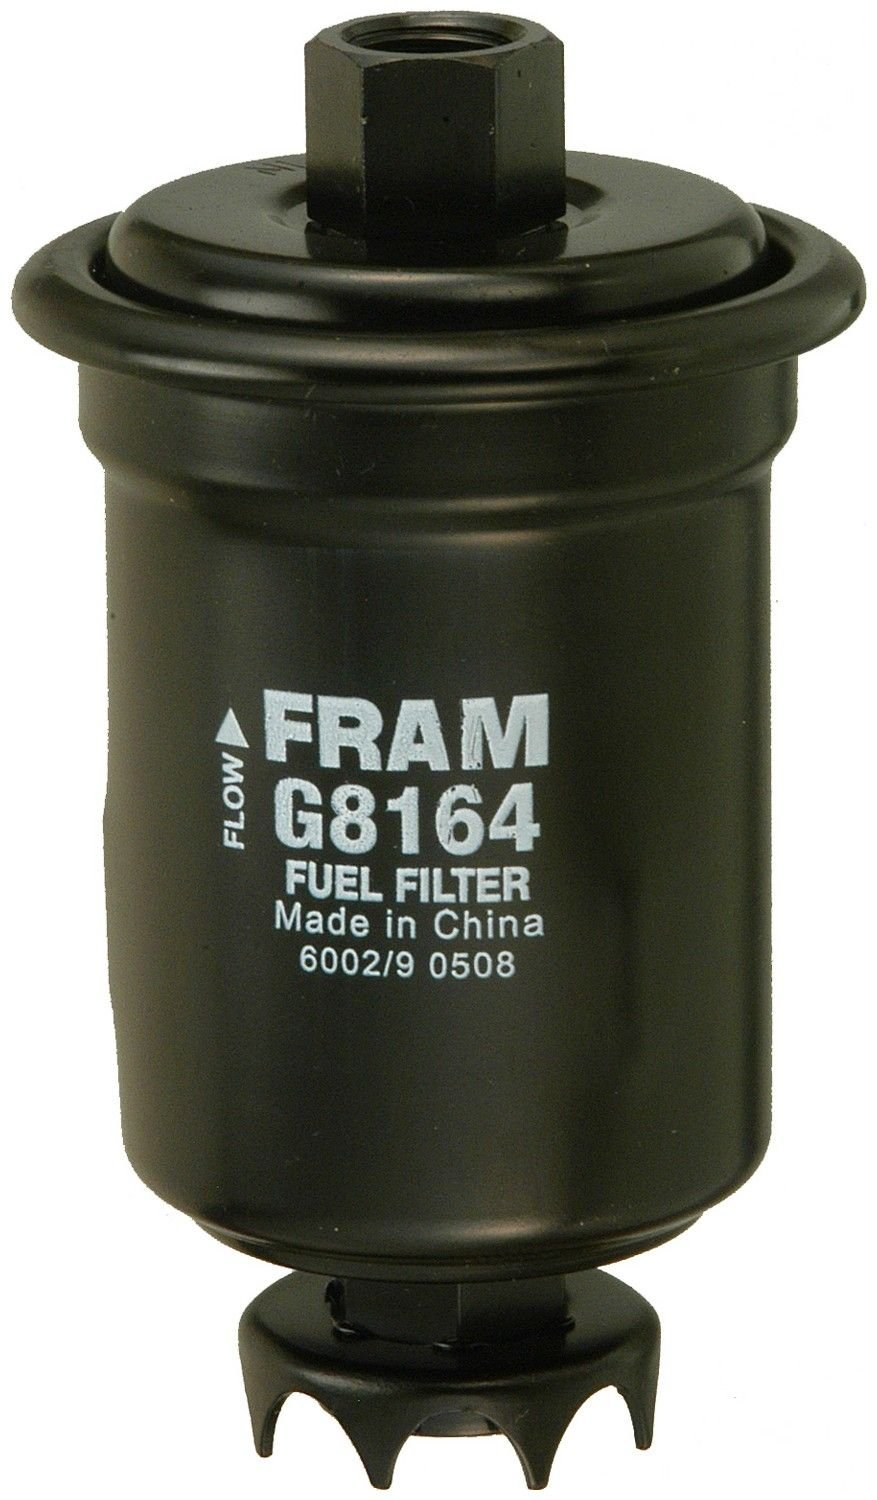 Toyota Camry Fuel Filter Replacement Beck Arnley Fram Hastings 2009 Location 1983 G8164 In Line Universal